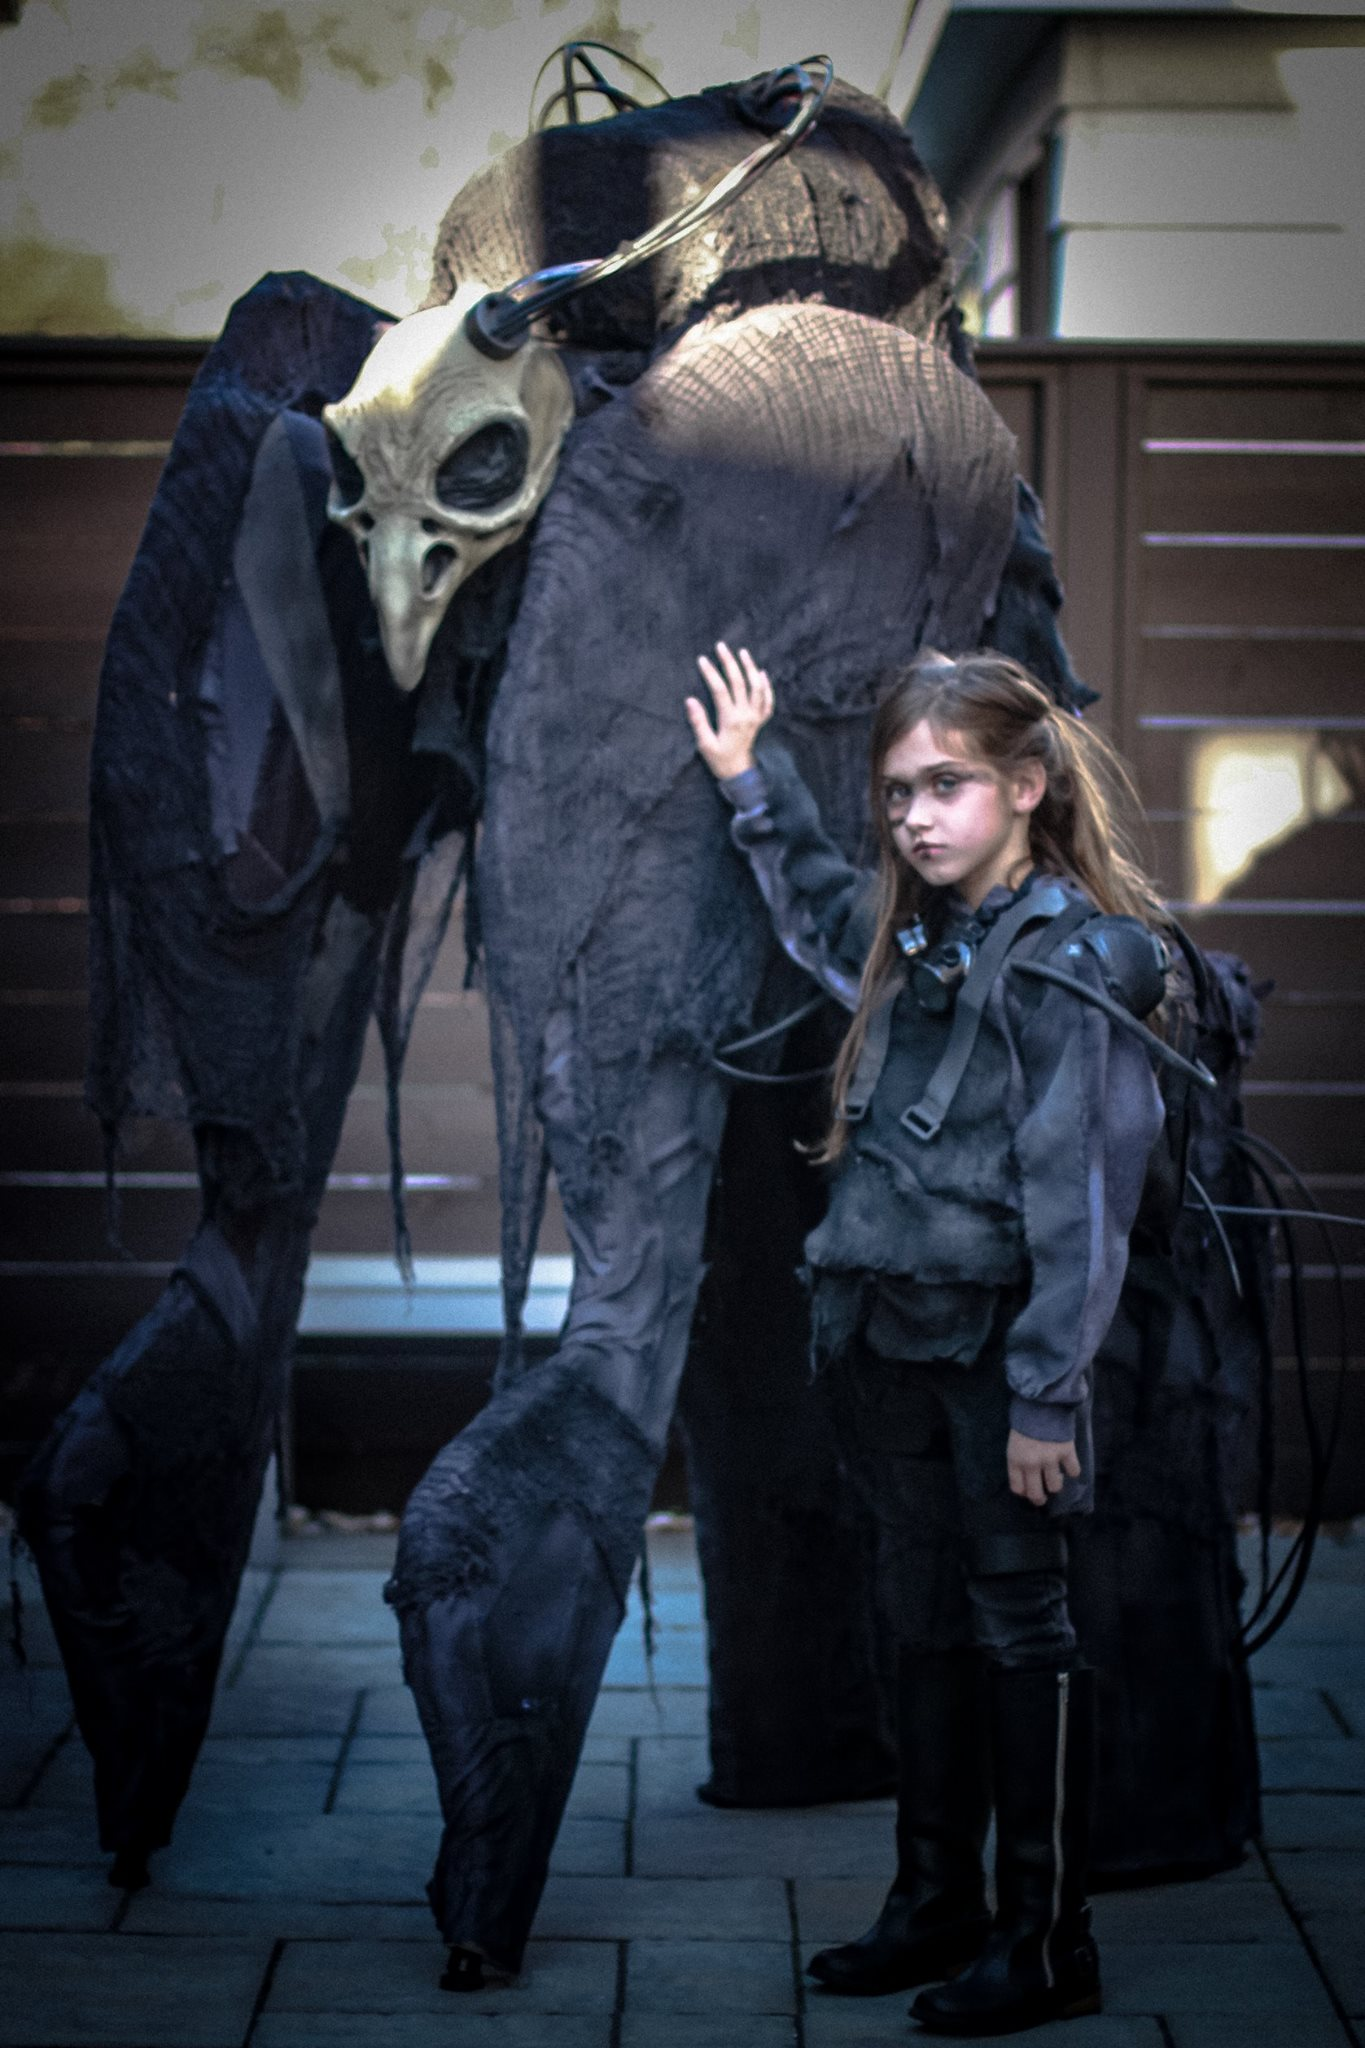 My daughter and I are ready to terrorize the neighborhood again this Halloween.